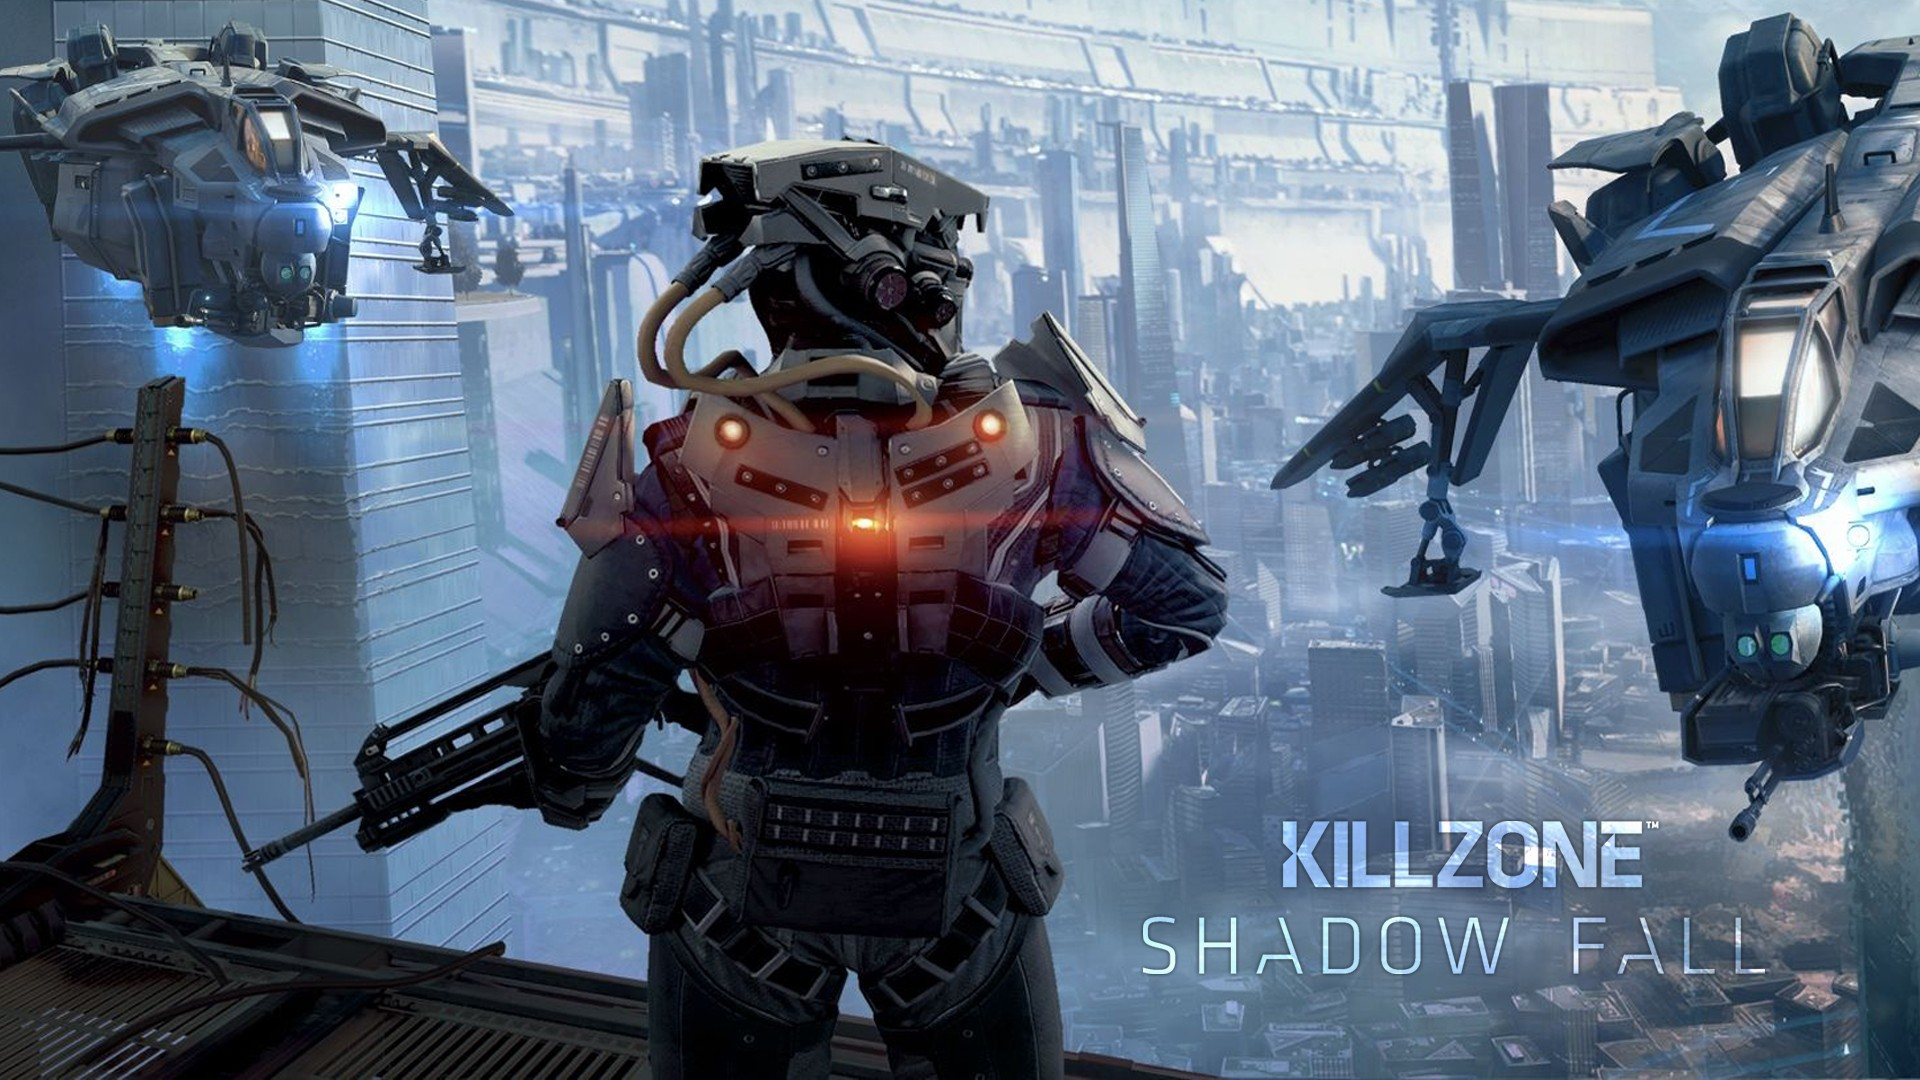 Killzone Shadow Fall Wallpaper